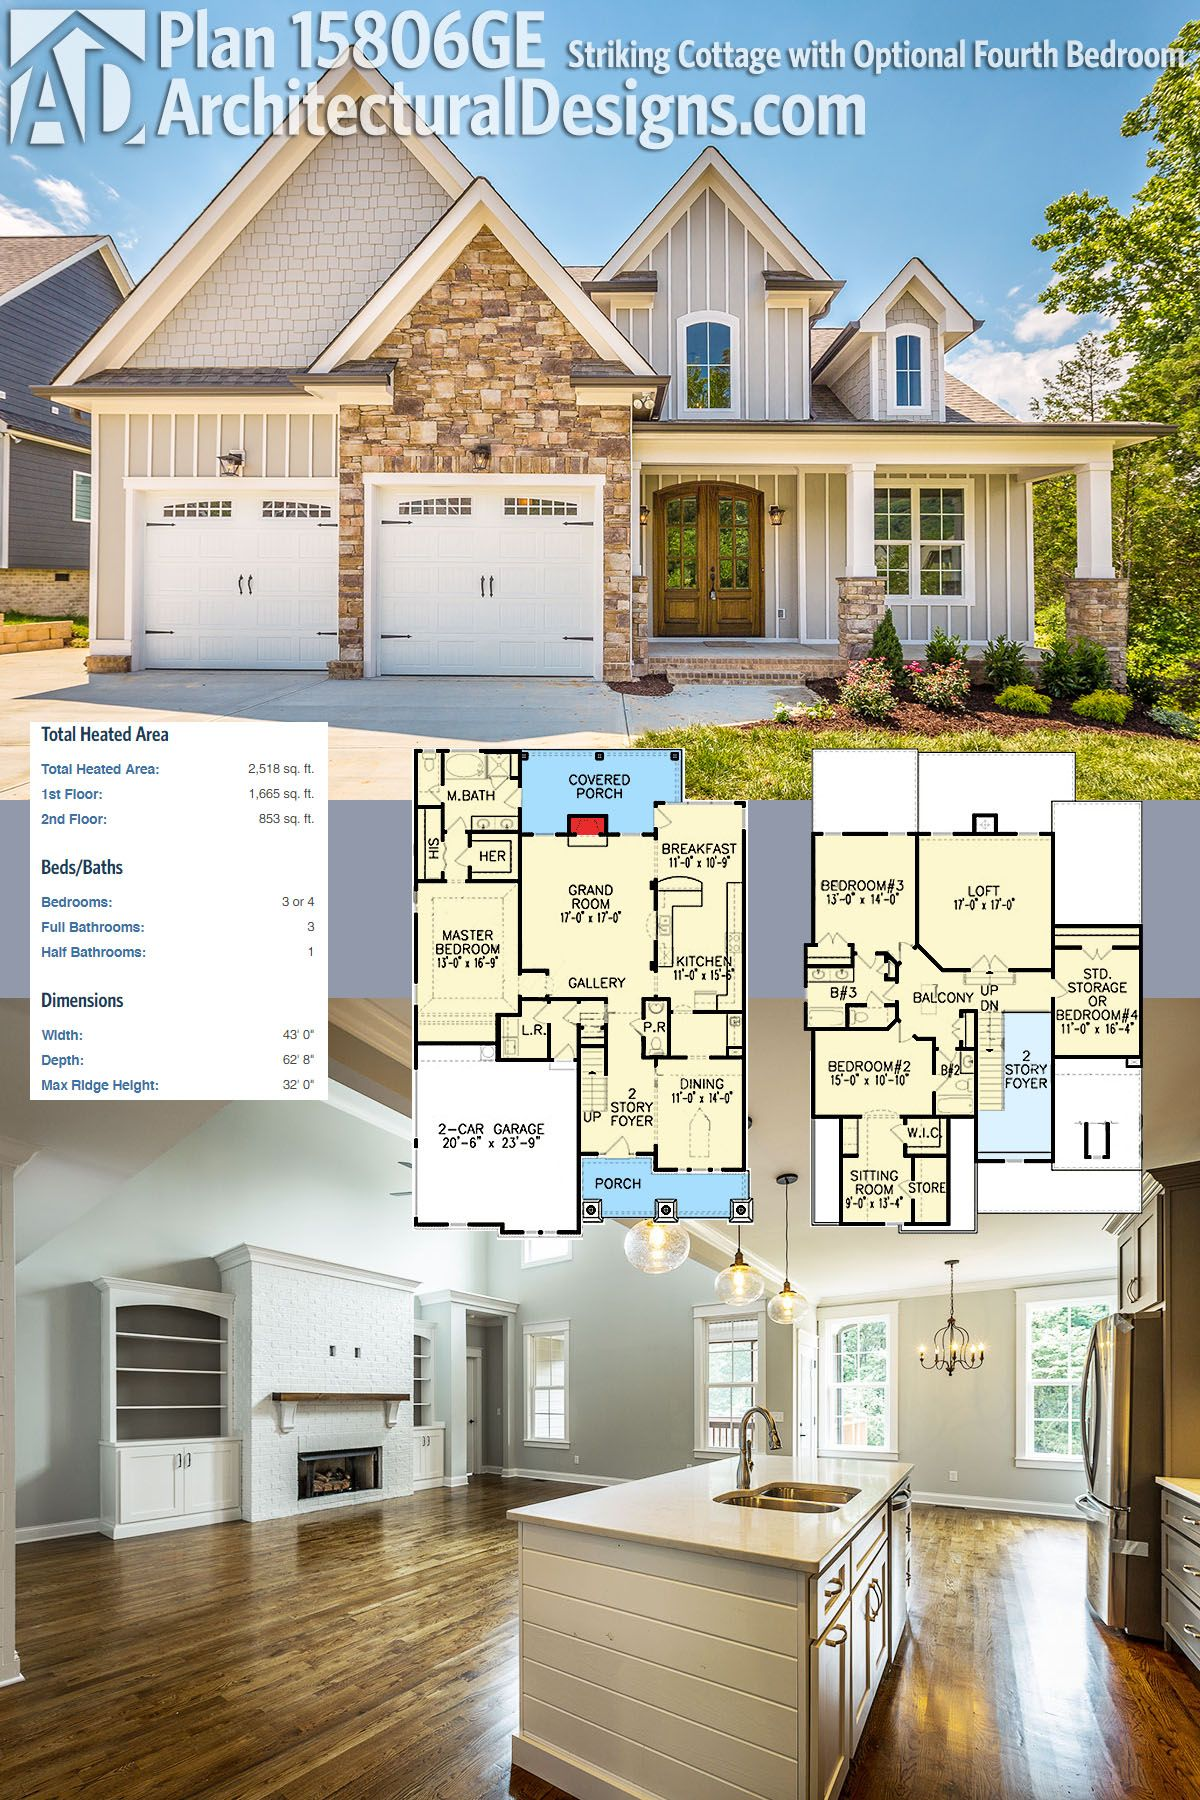 Plan 15806GE Striking Cottage with Optional Fourth